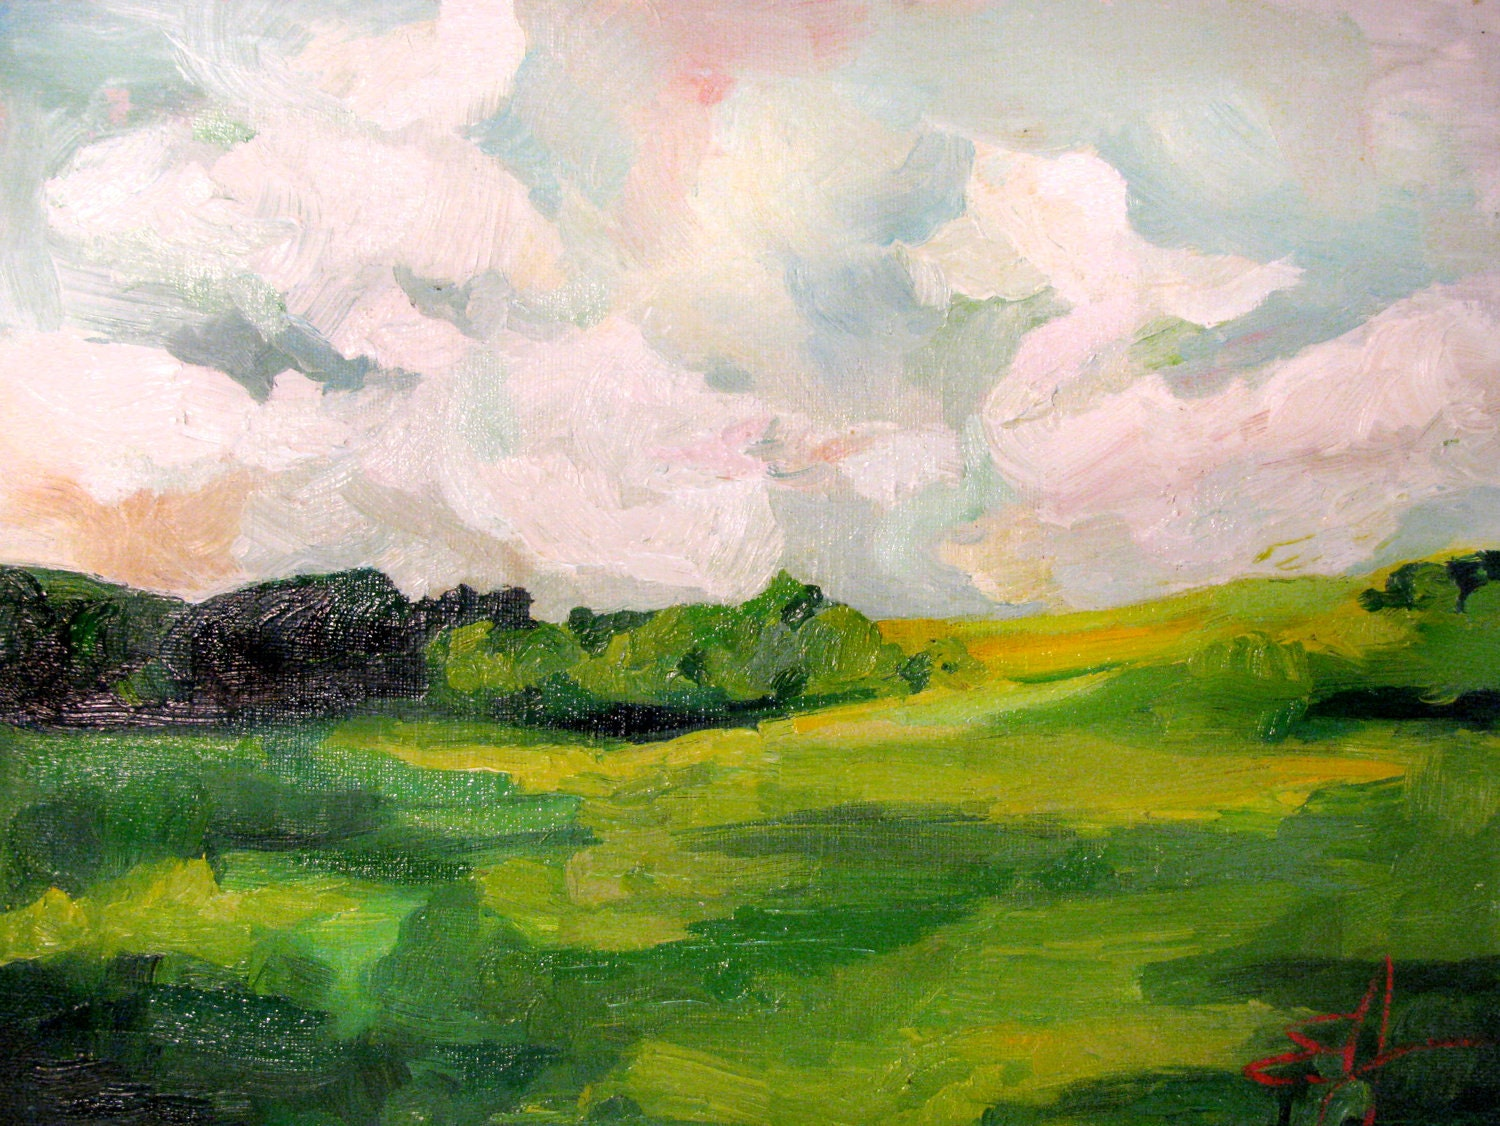 The Grass Looks Greener When the Sky Dances An Original Oil Landscape Painting by Emily Jeffords